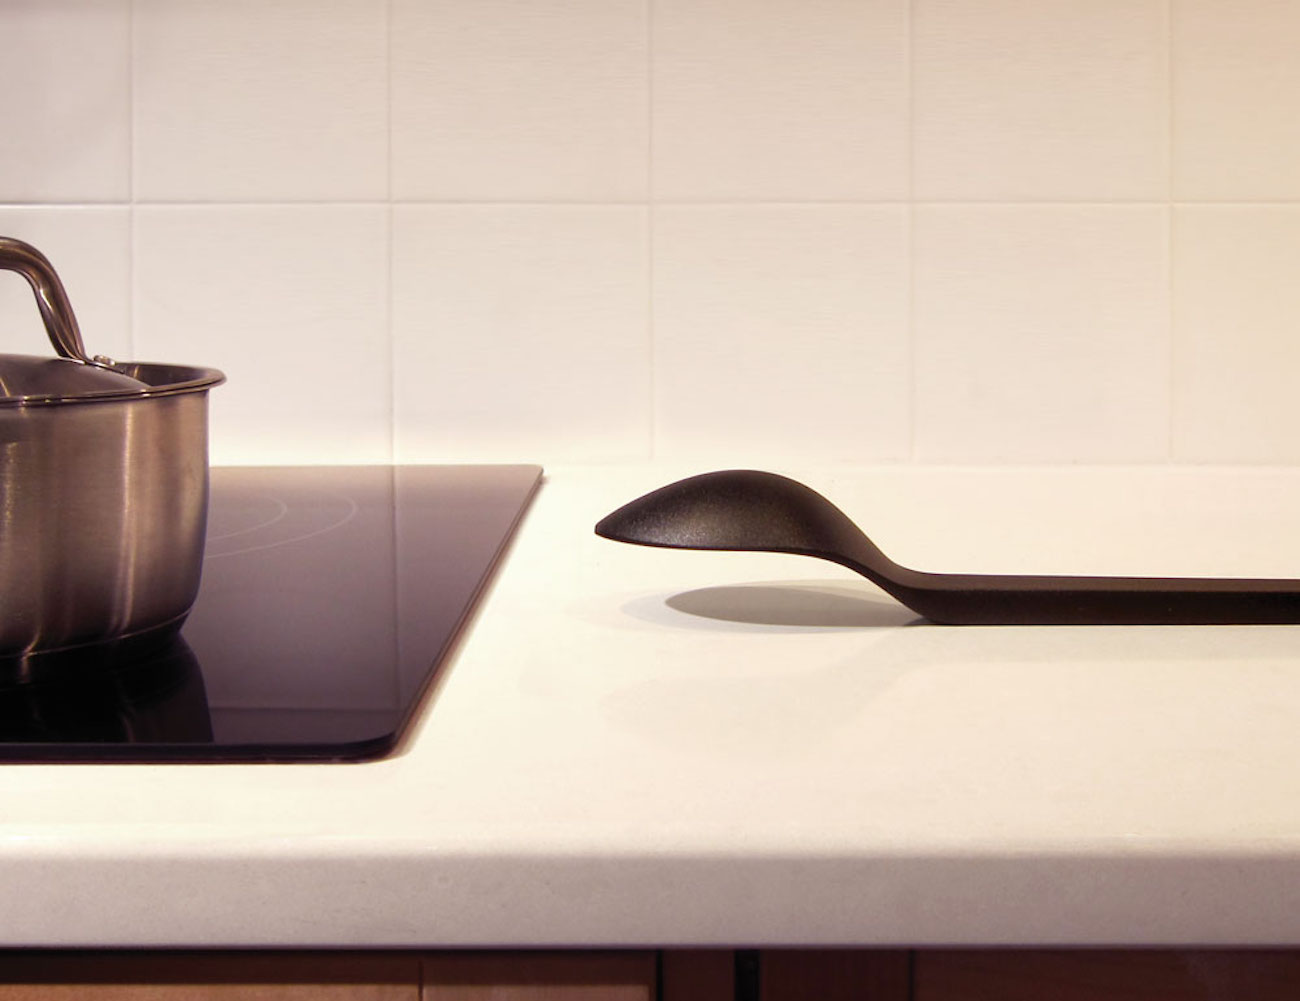 Cantilever+Cooking+Utensils+%26%238211%3B+Hygienic+Solution+For+Your+Kitchen